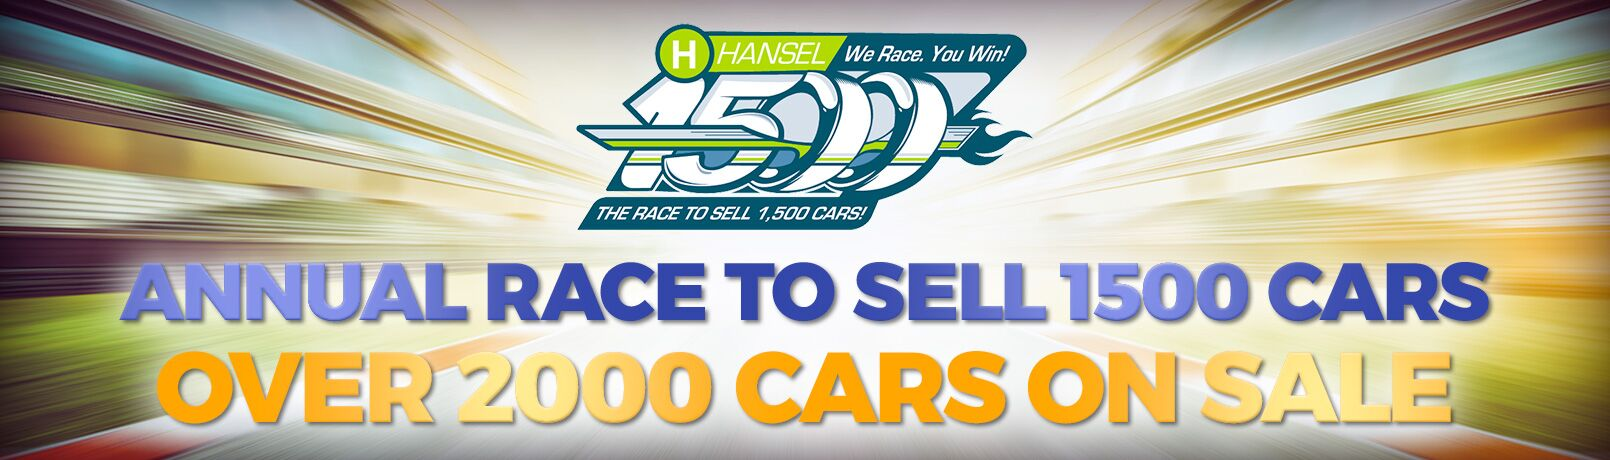 Hansel 1500 Annual race to sell 1500 cars, over 2000 cars on sale!